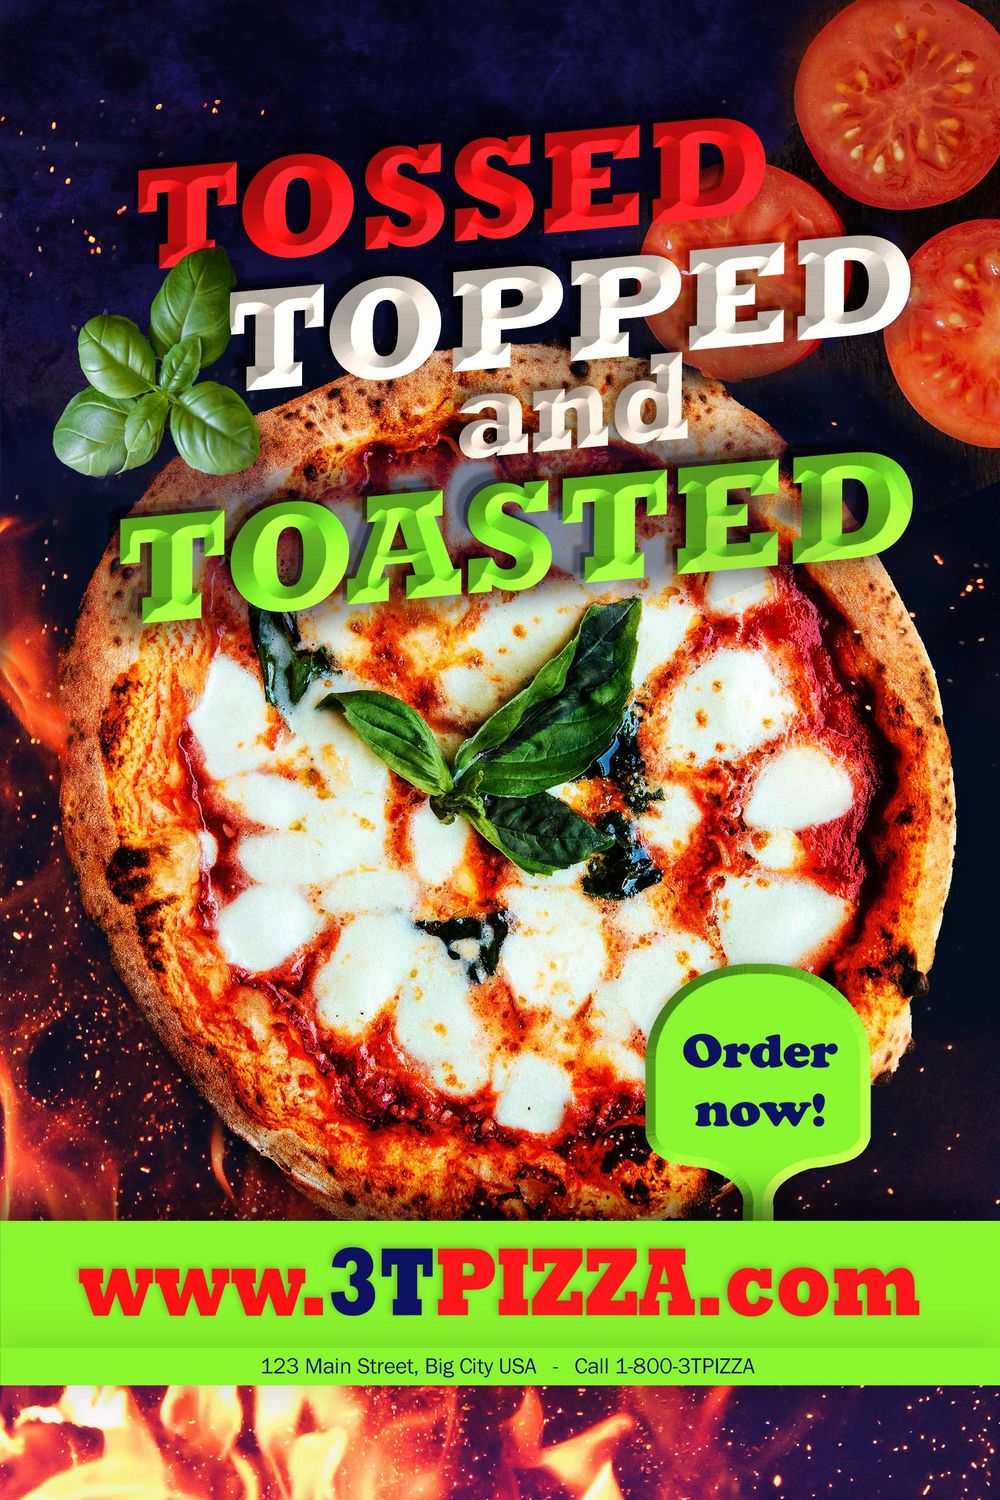 3T PIZZA - image 1 - student project